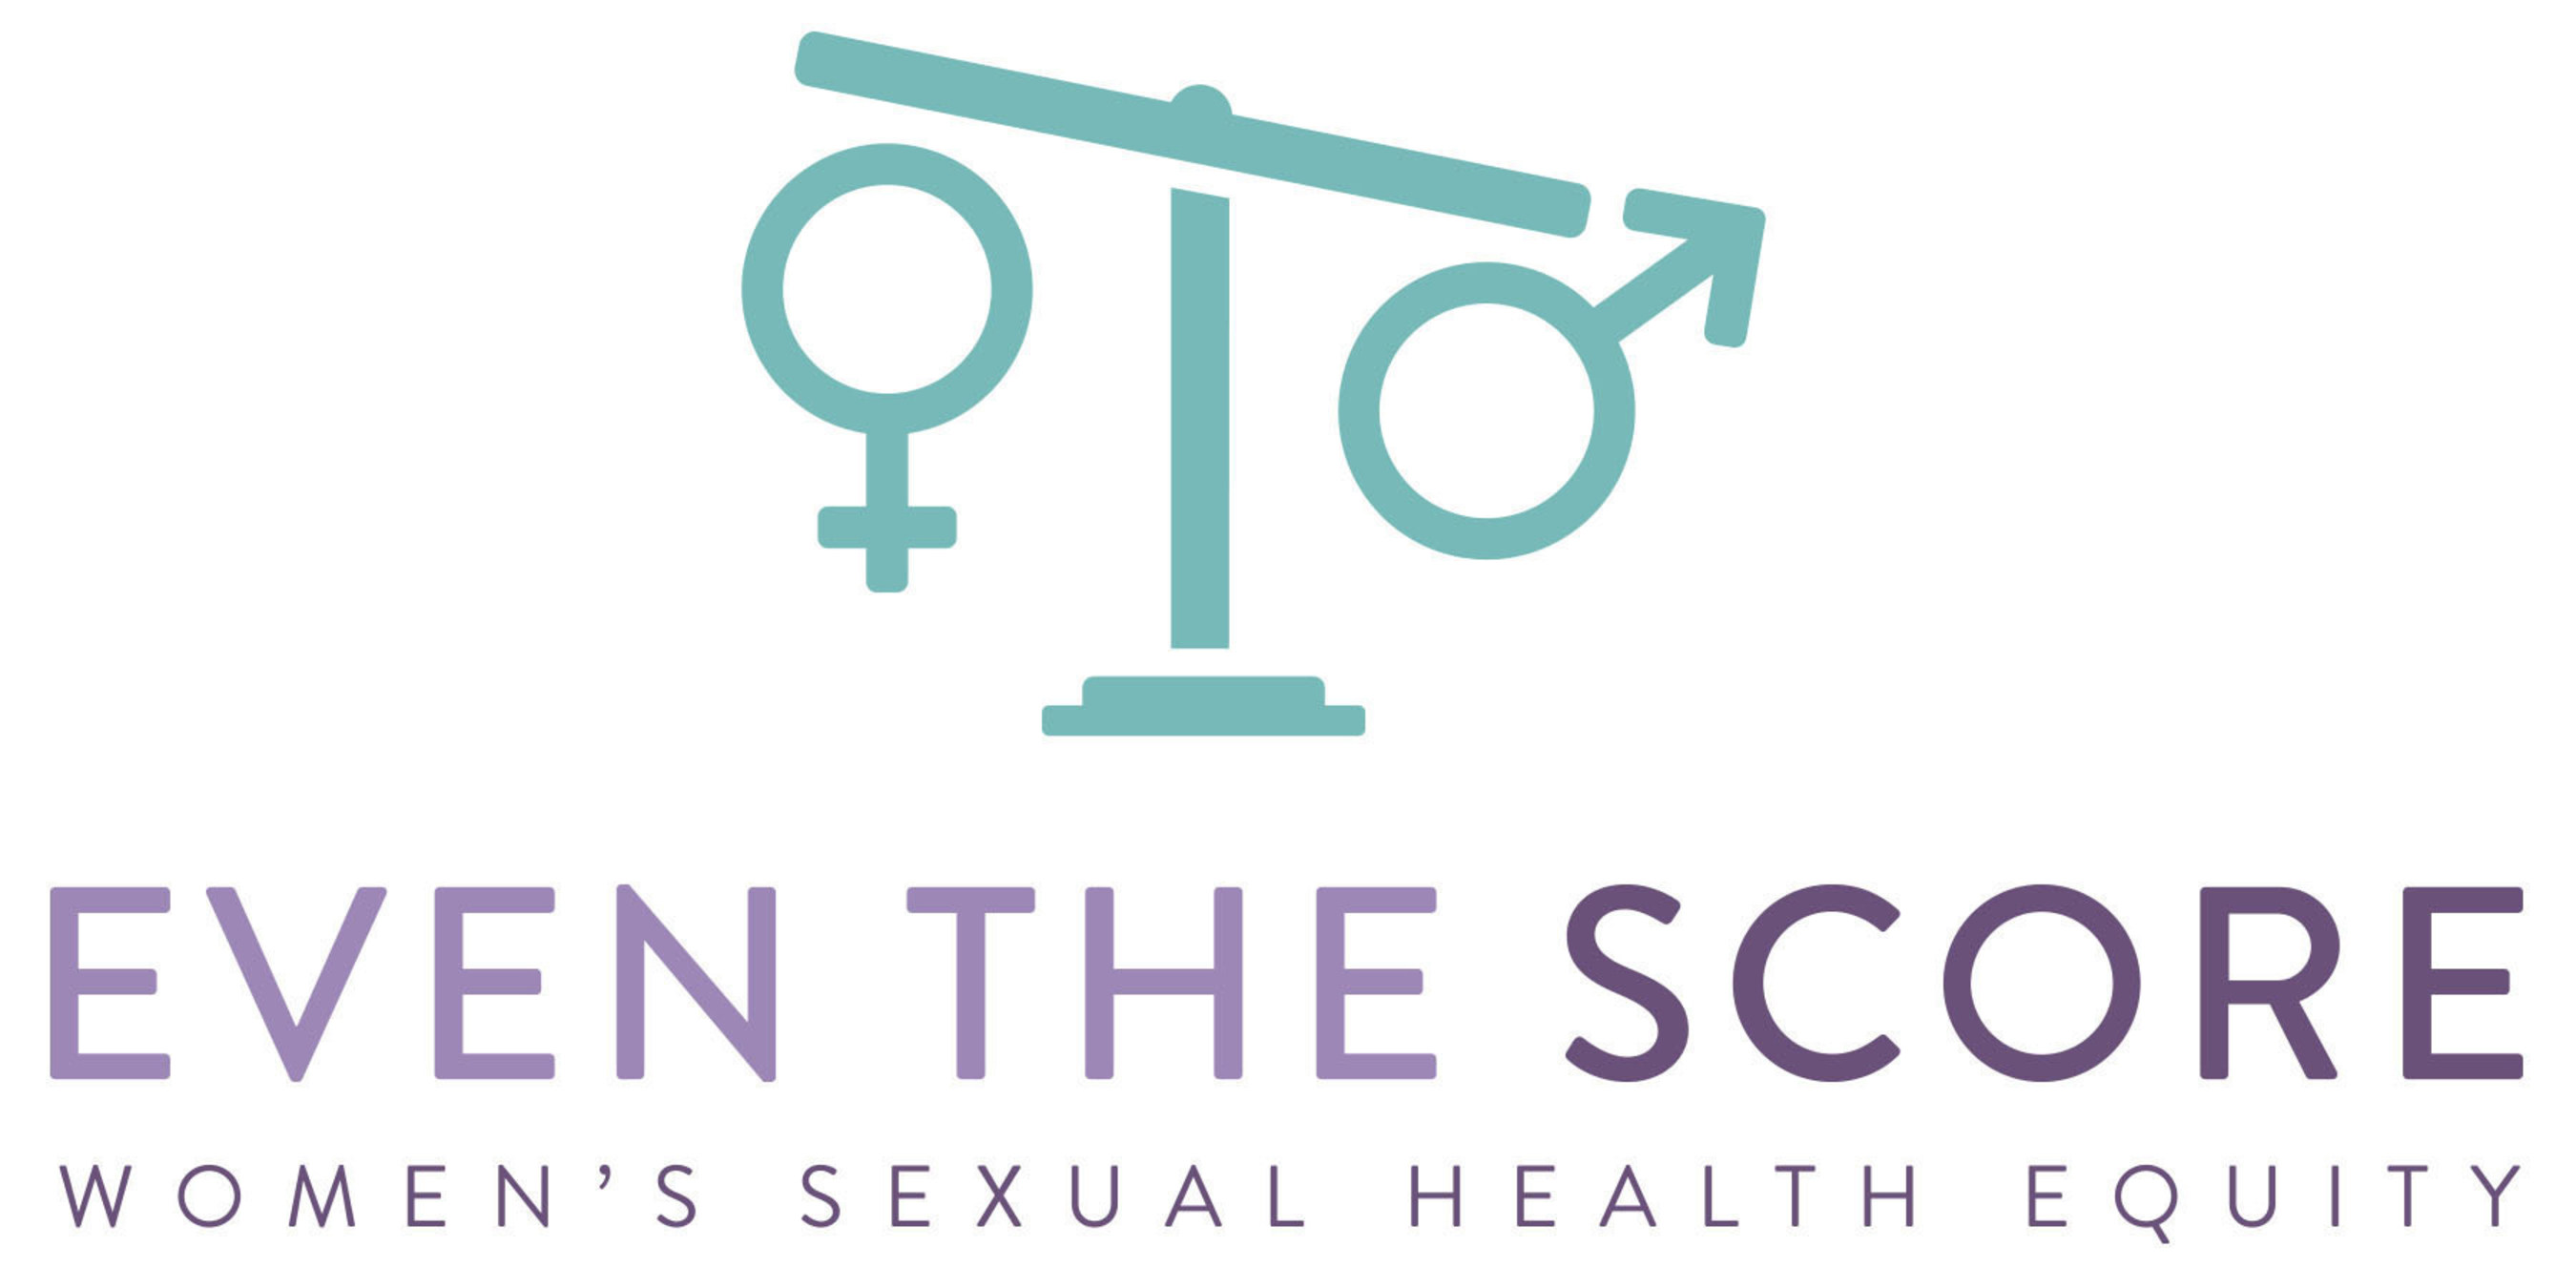 Even the Score: A Campaign for Women's Sexual Health Equity